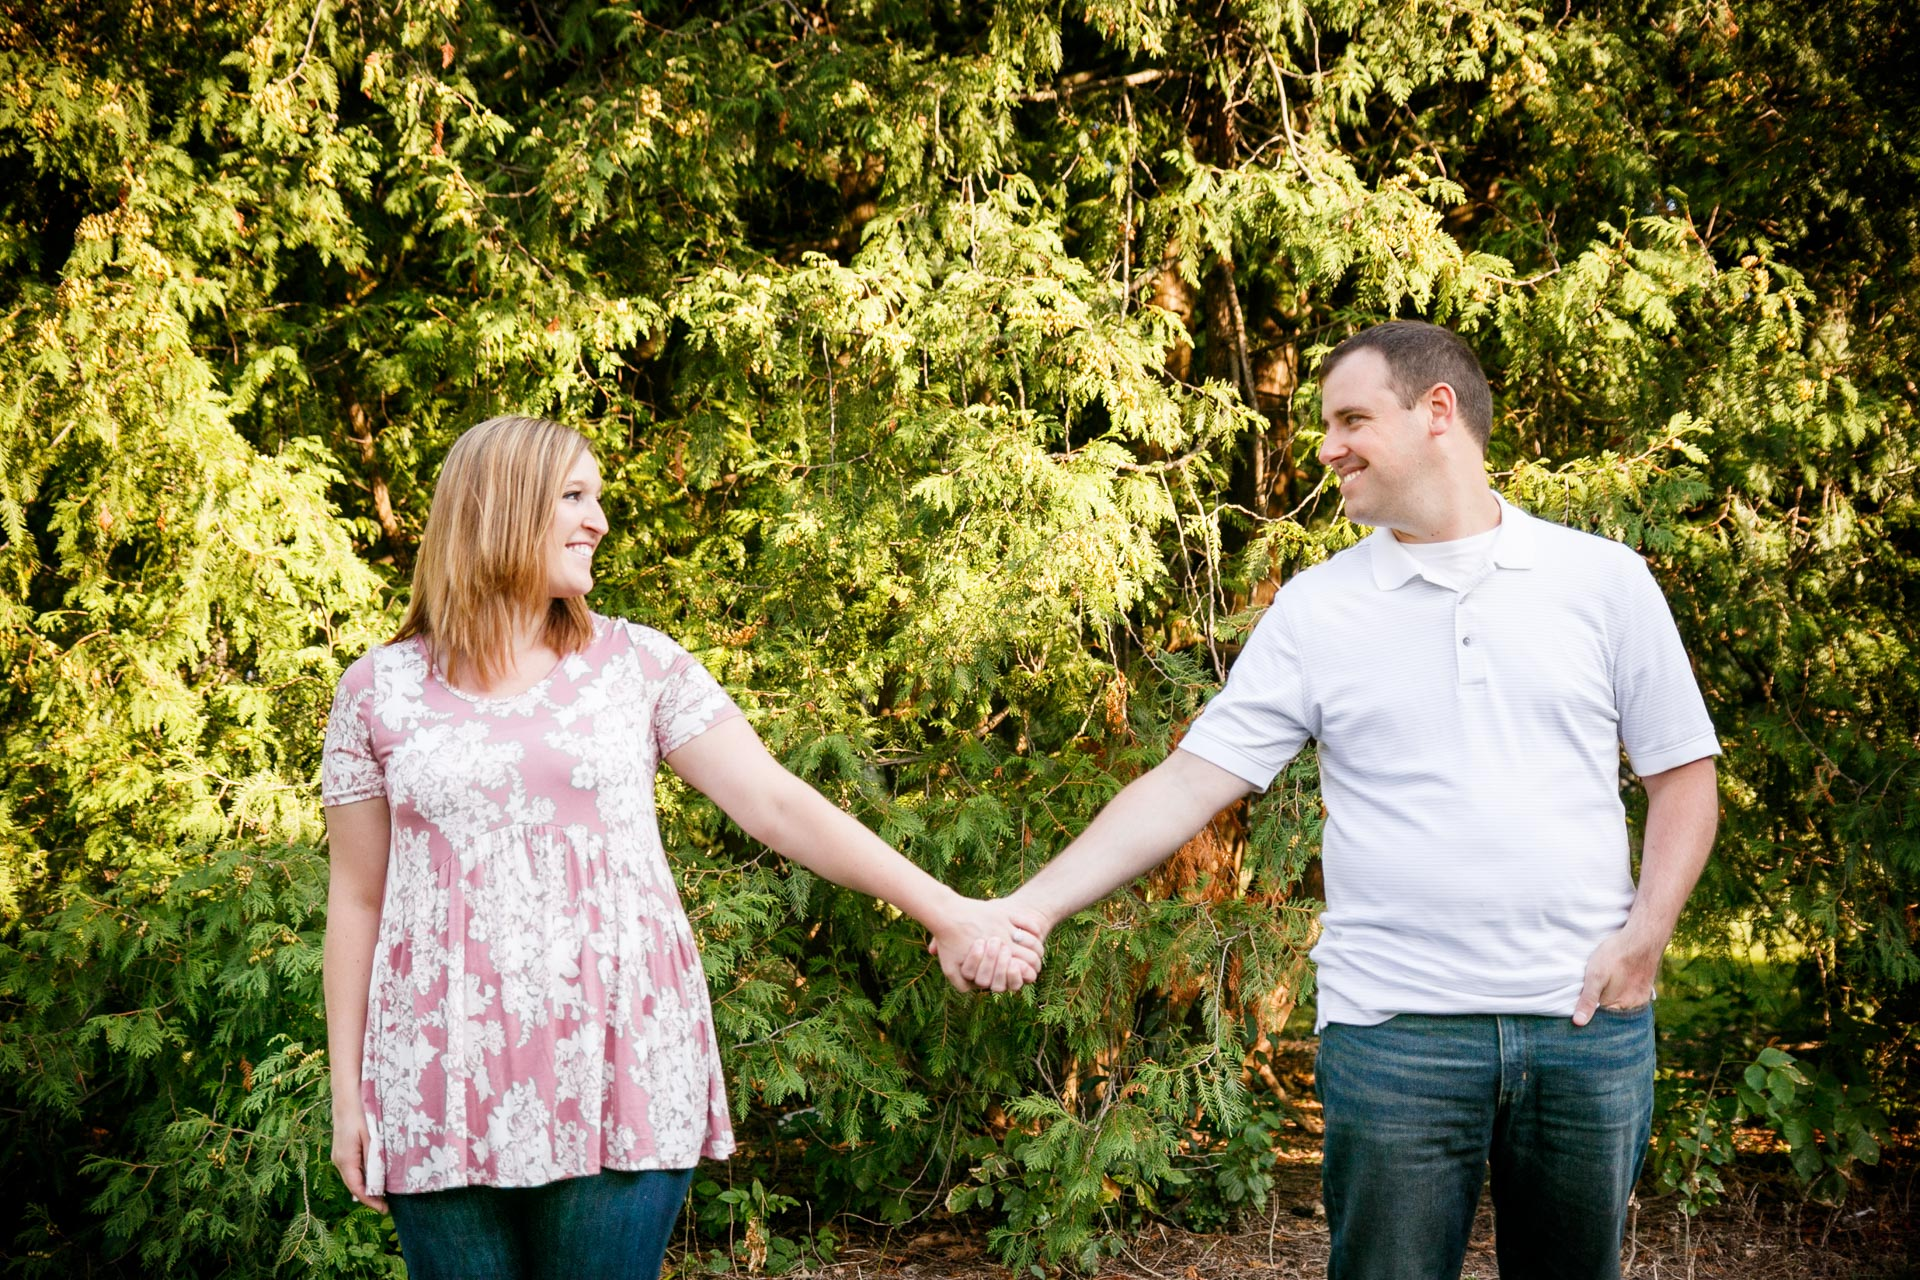 engagement-photos-riverside-park-neenah-adam-shea-photography-green-bay-appleton-neenah-photographer-8.jpg